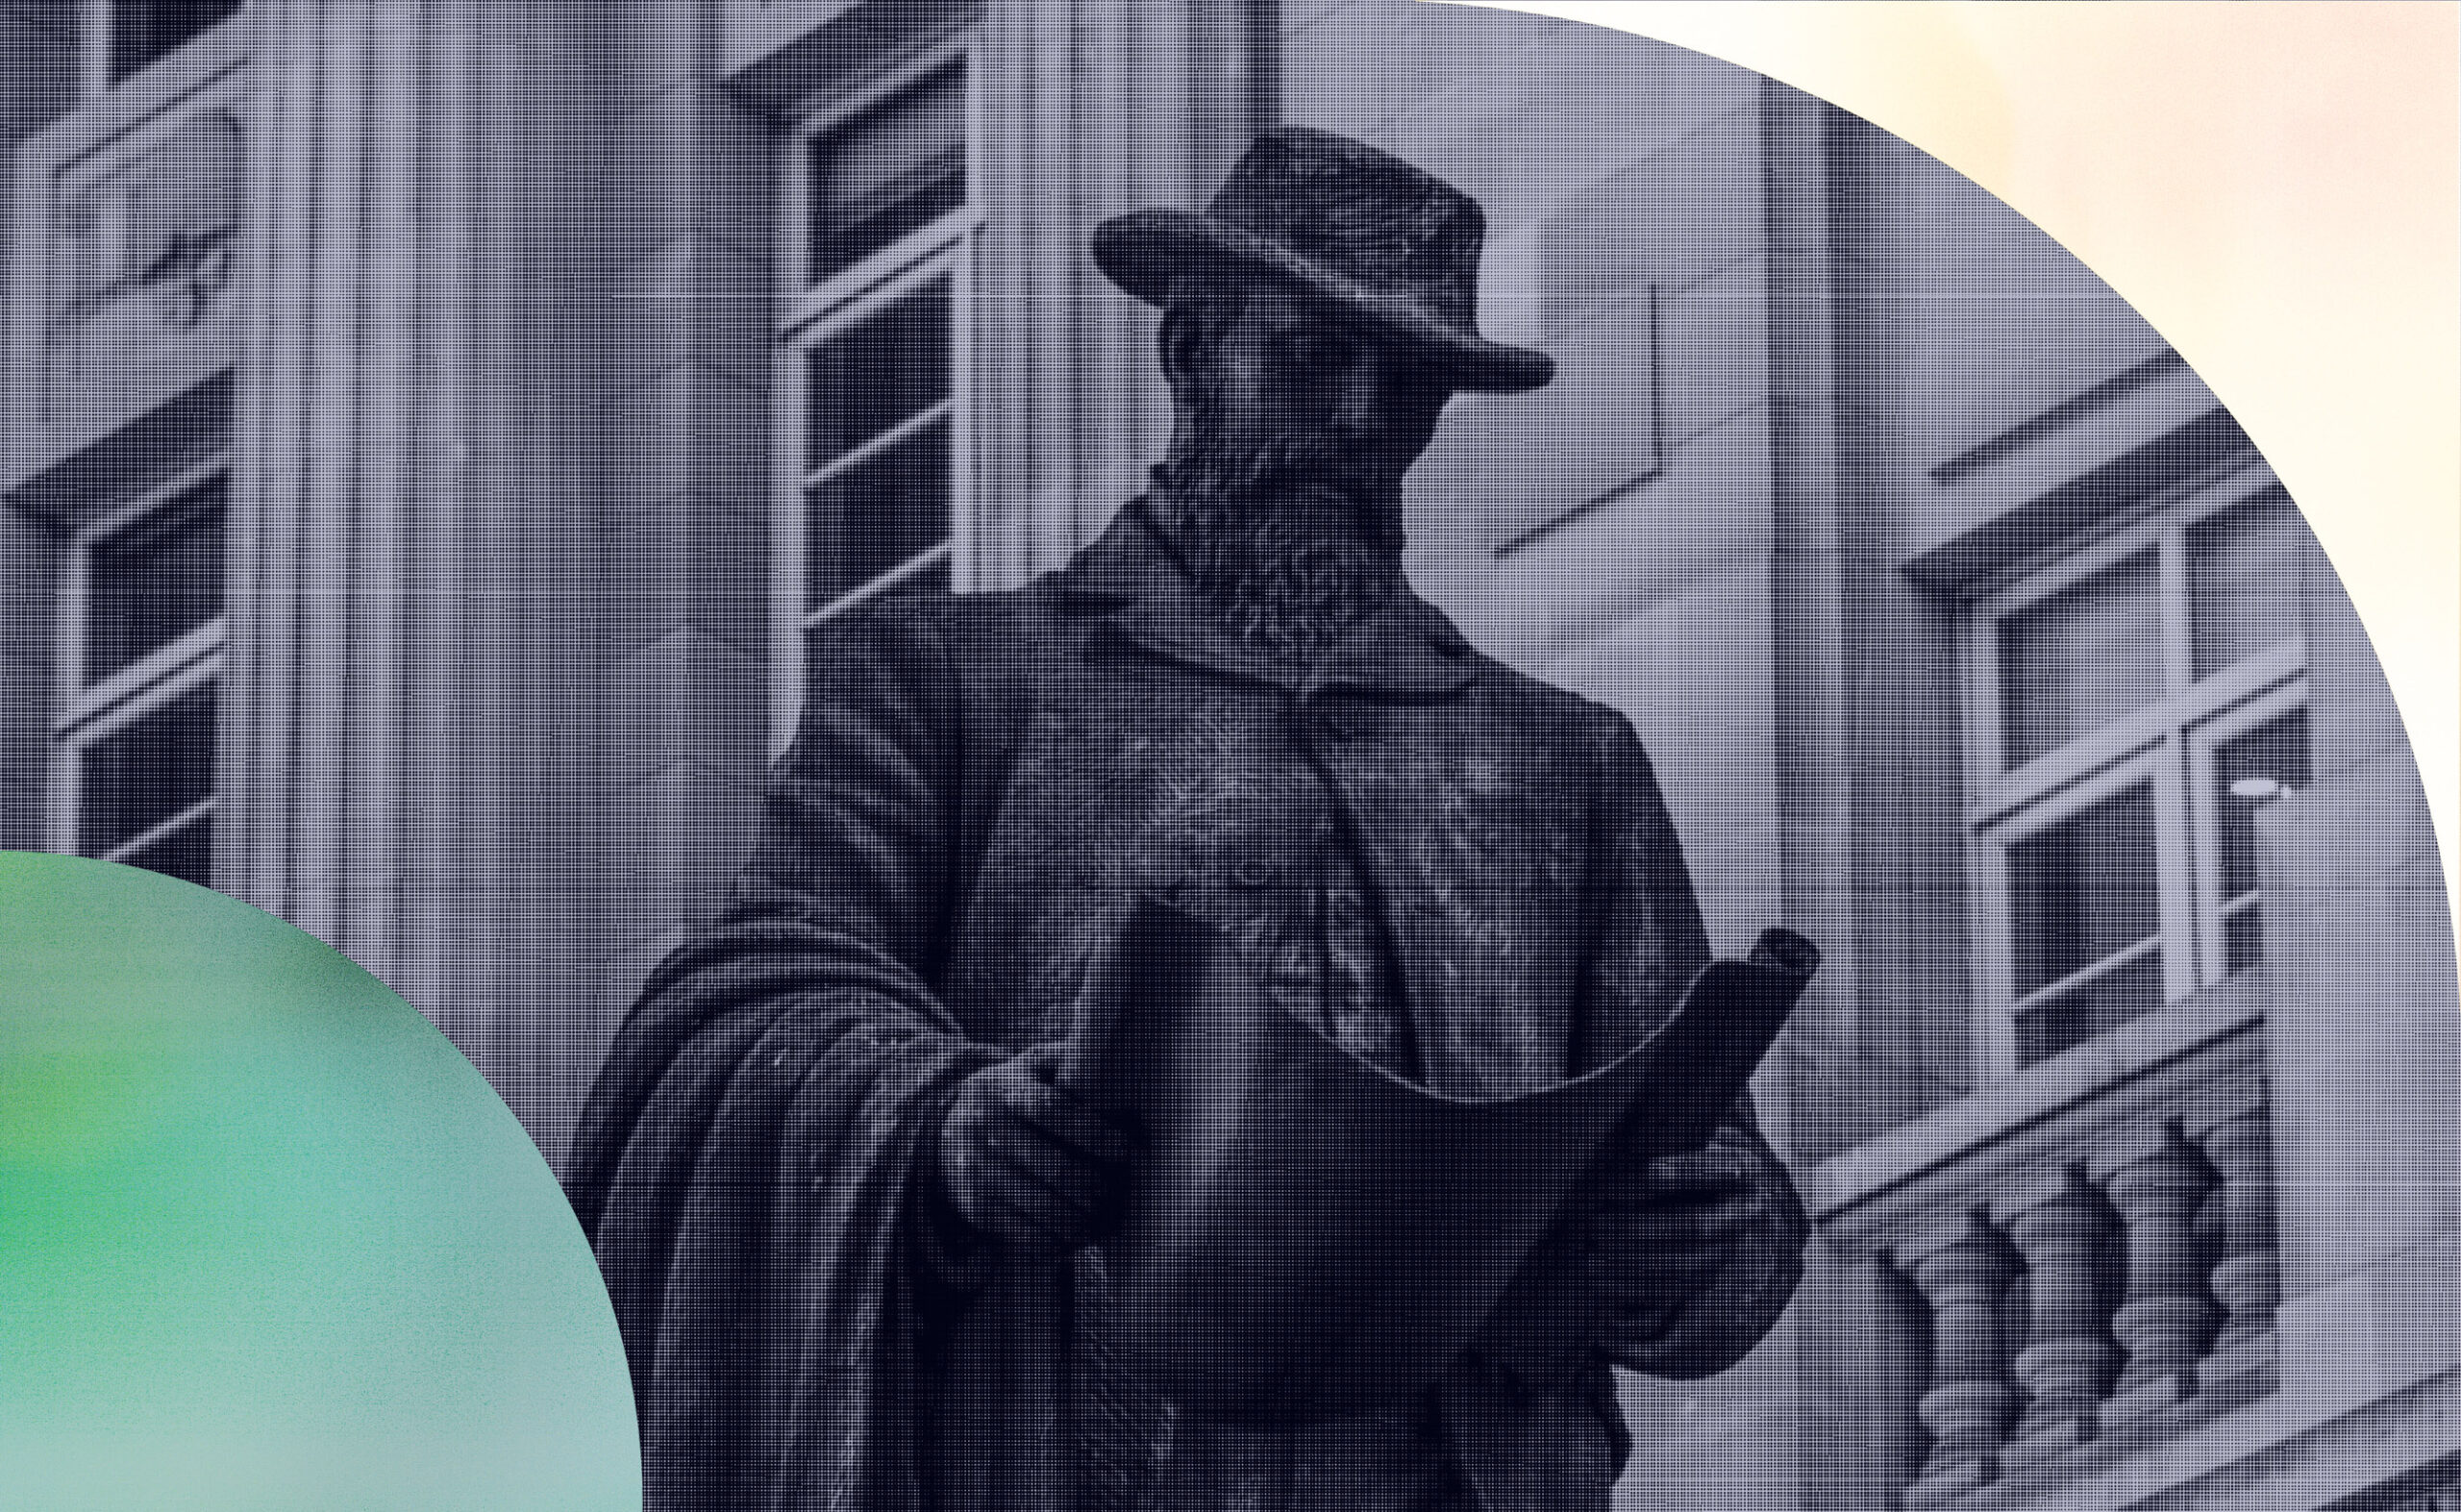 Statue of James Henry Greathead at The Royal Exchange